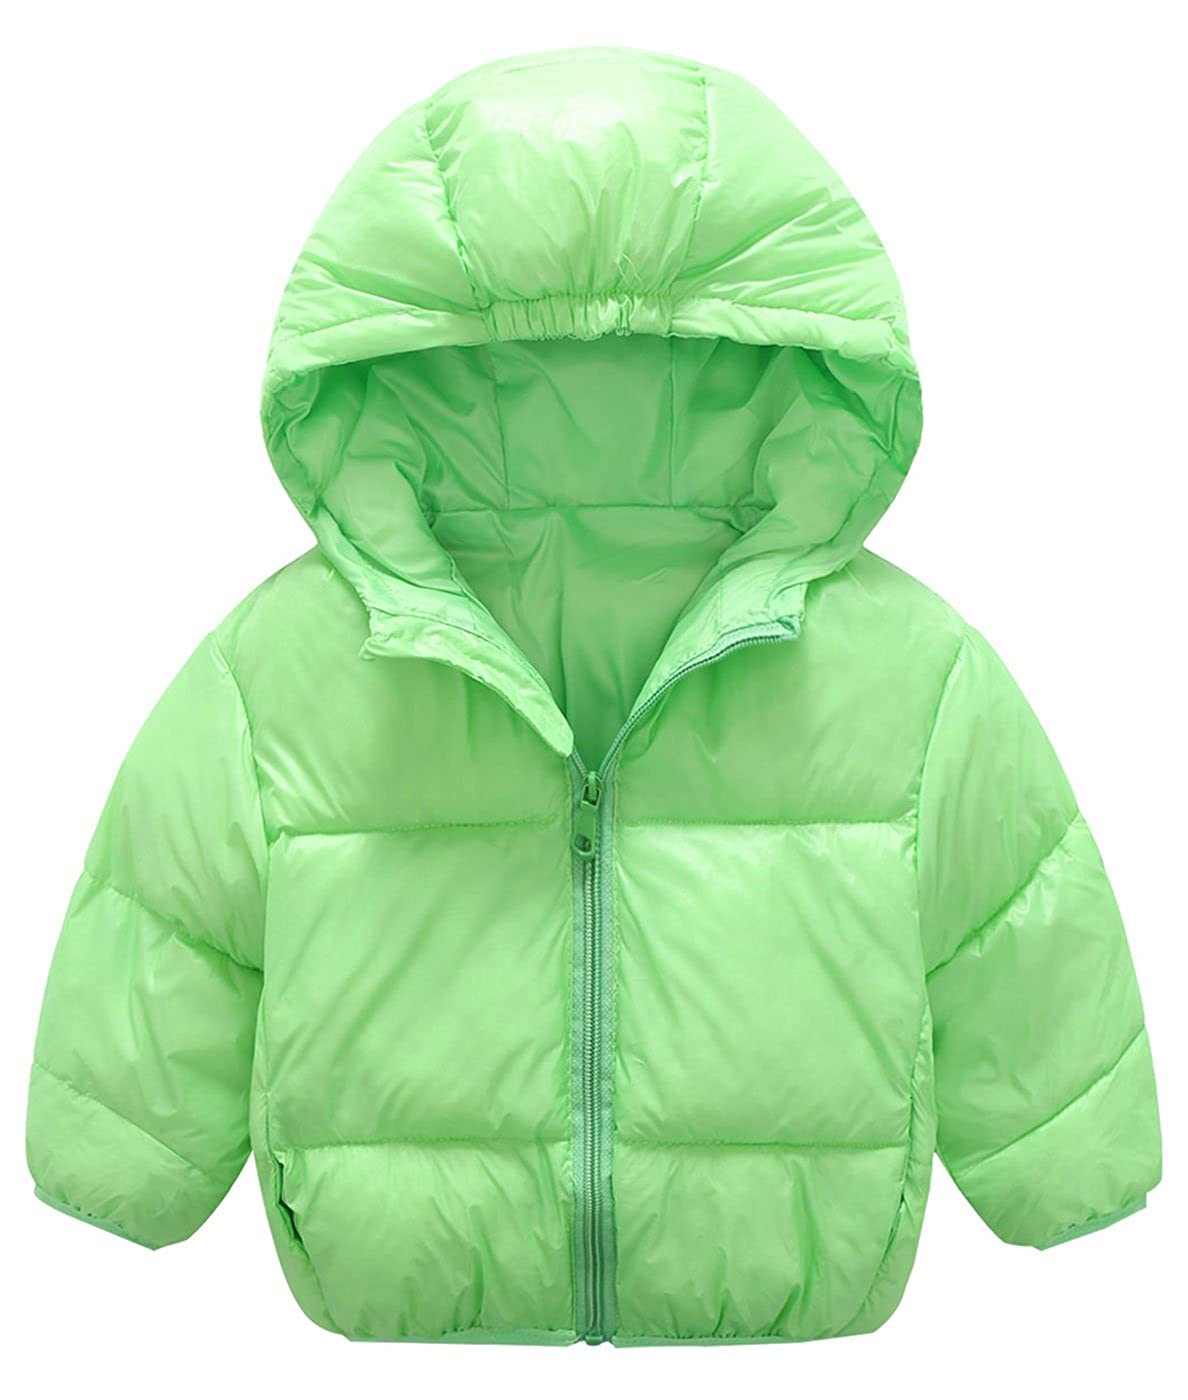 Mengxiaoya Toddler Puffer Jacket Winter Coats Lightweight Down Jacket Cotton Windproof Hoodie Coats Zip-up Green 5-6